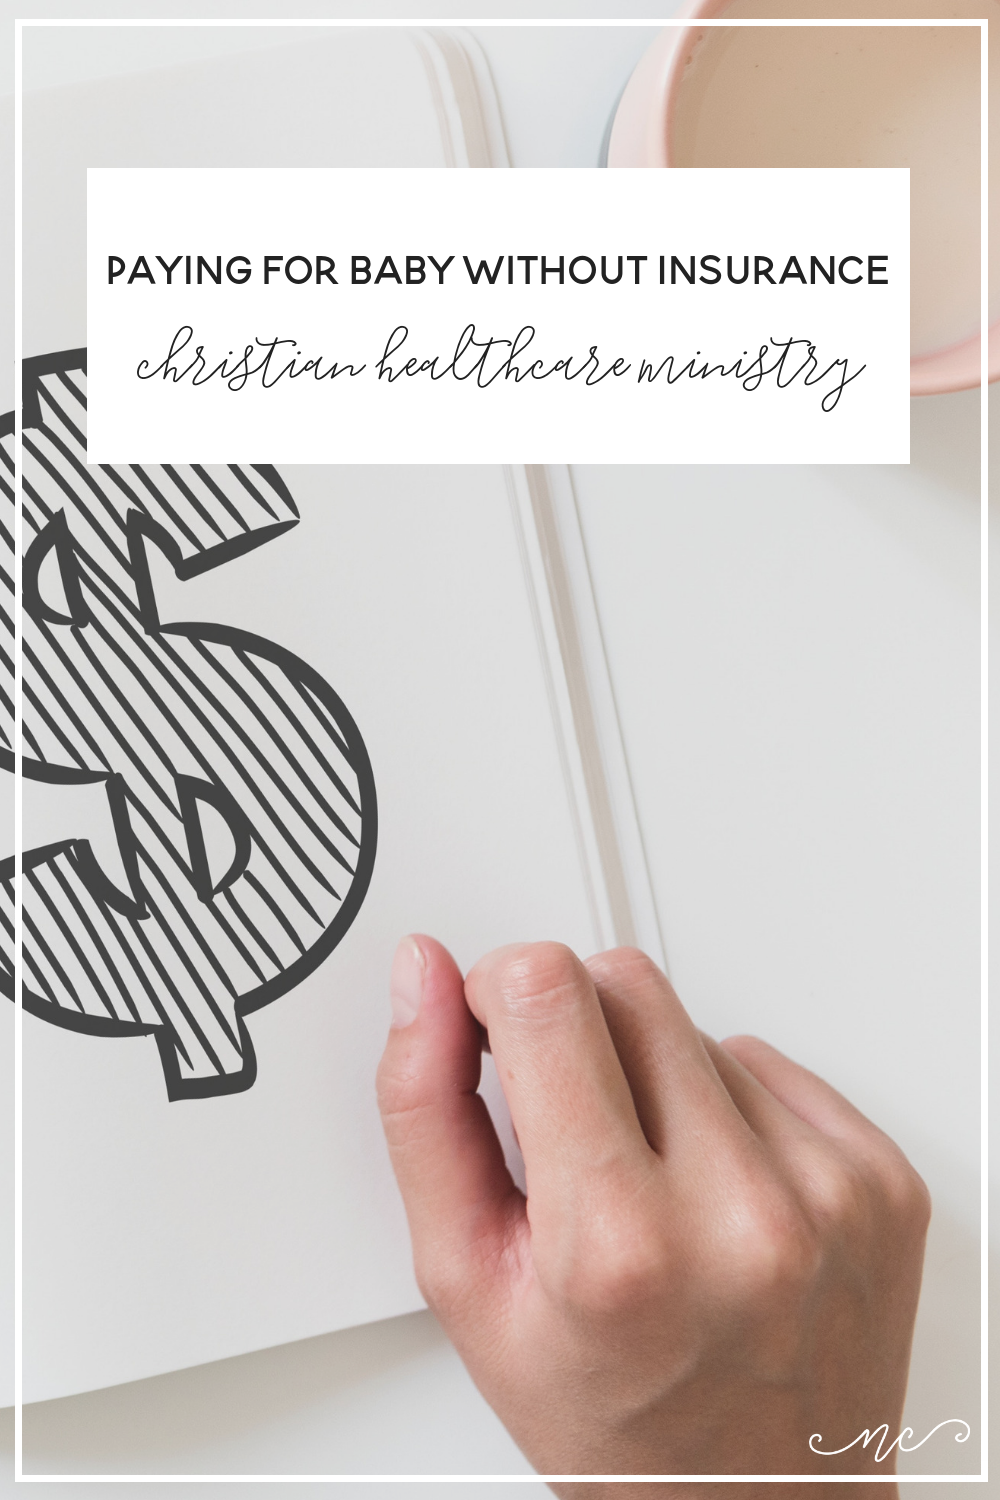 @noraconradcom's cover photo for 'Paying for a Baby Without Insurance - Christian Healthcare Ministries Review — Nora Conrad'